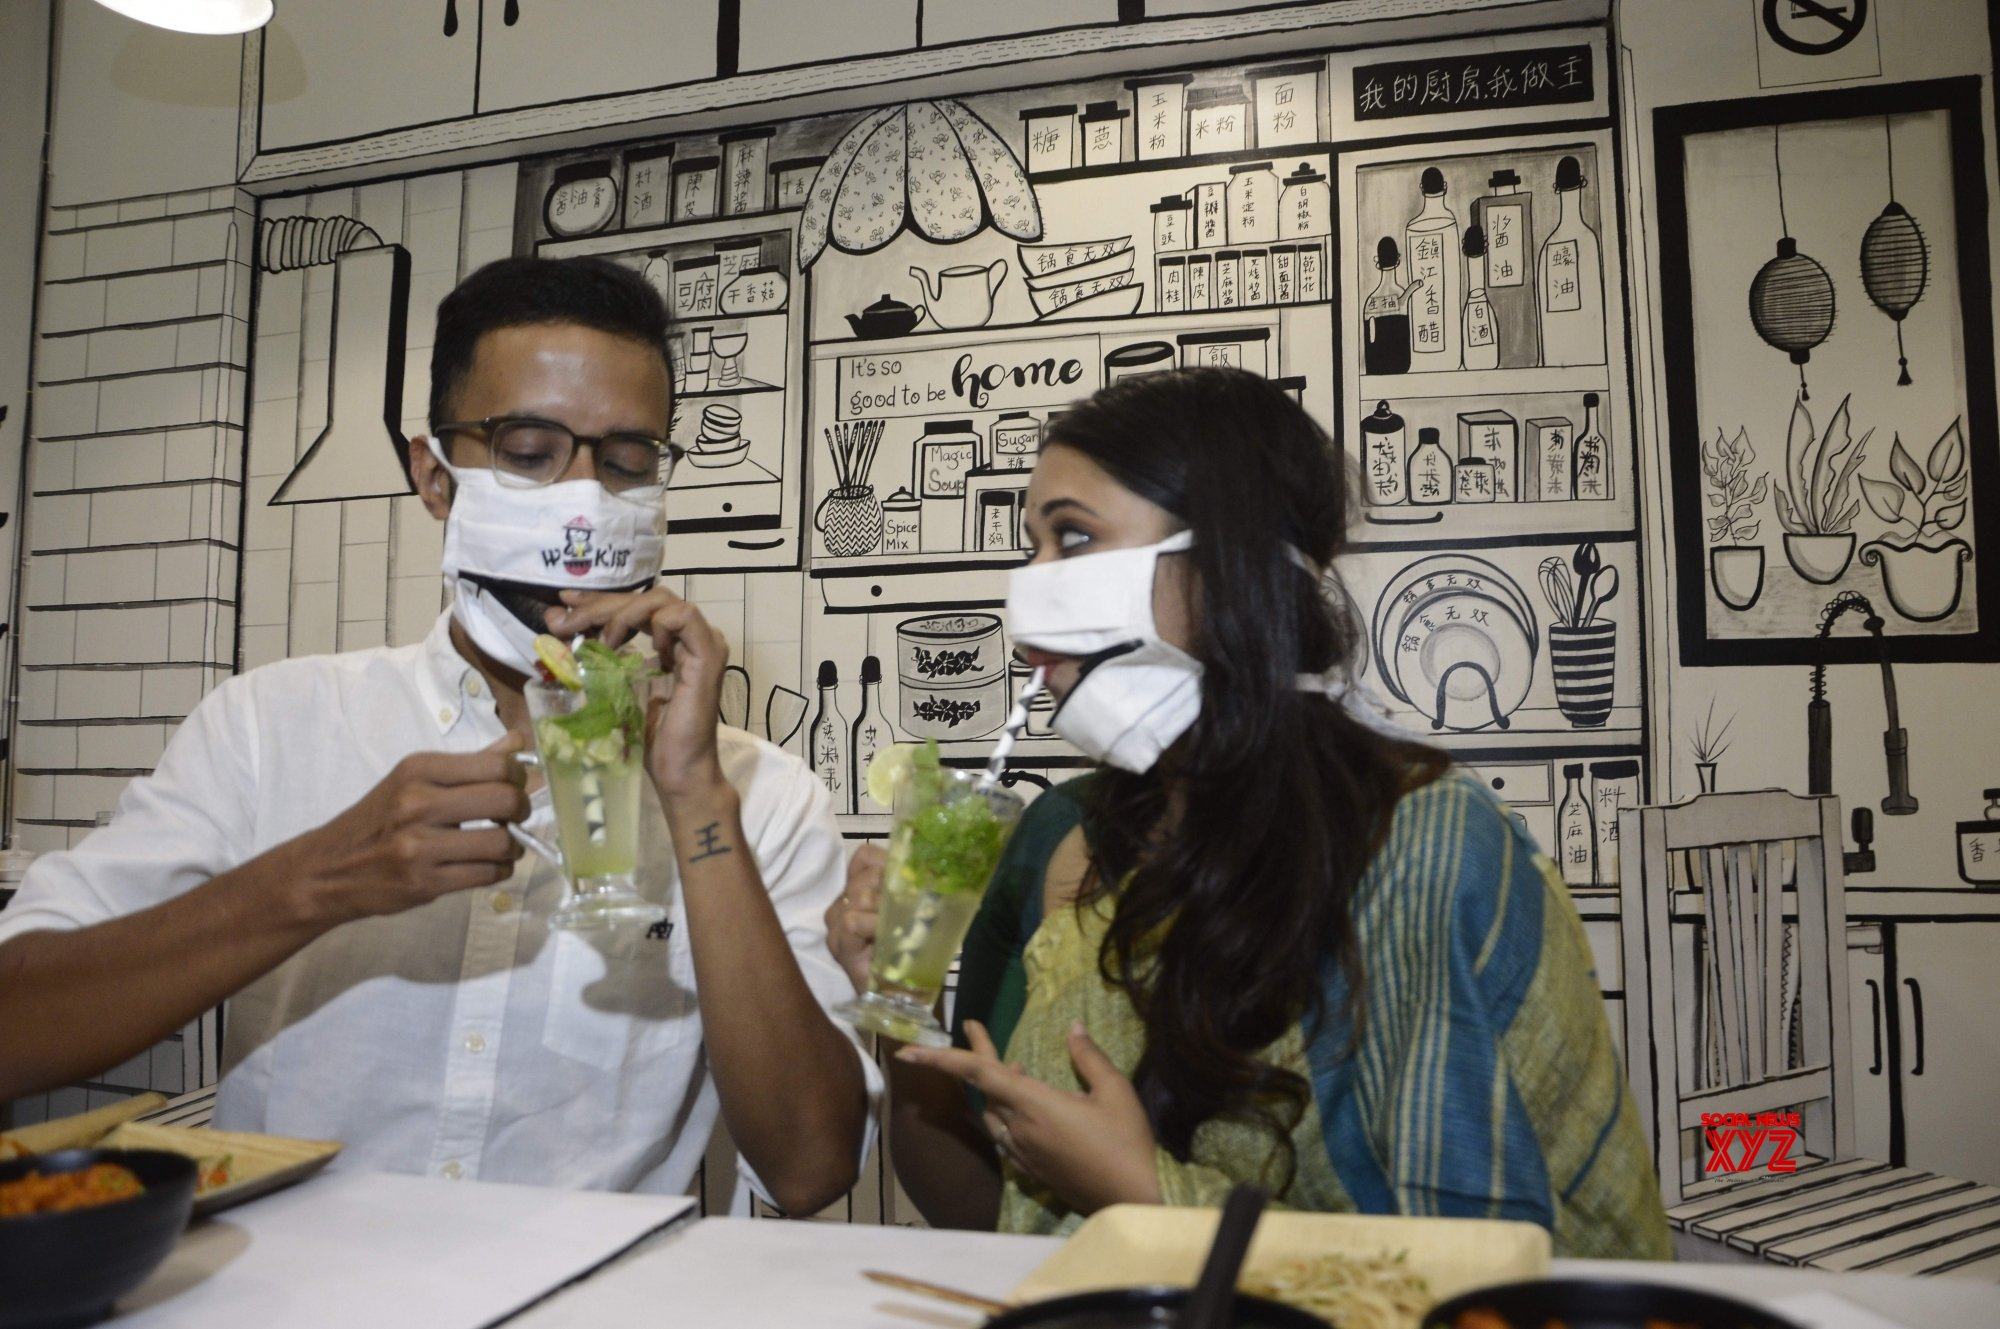 Kolkata: Special masks at Kolkata restaurants enable people to eat and drink without removing them! #Gallery